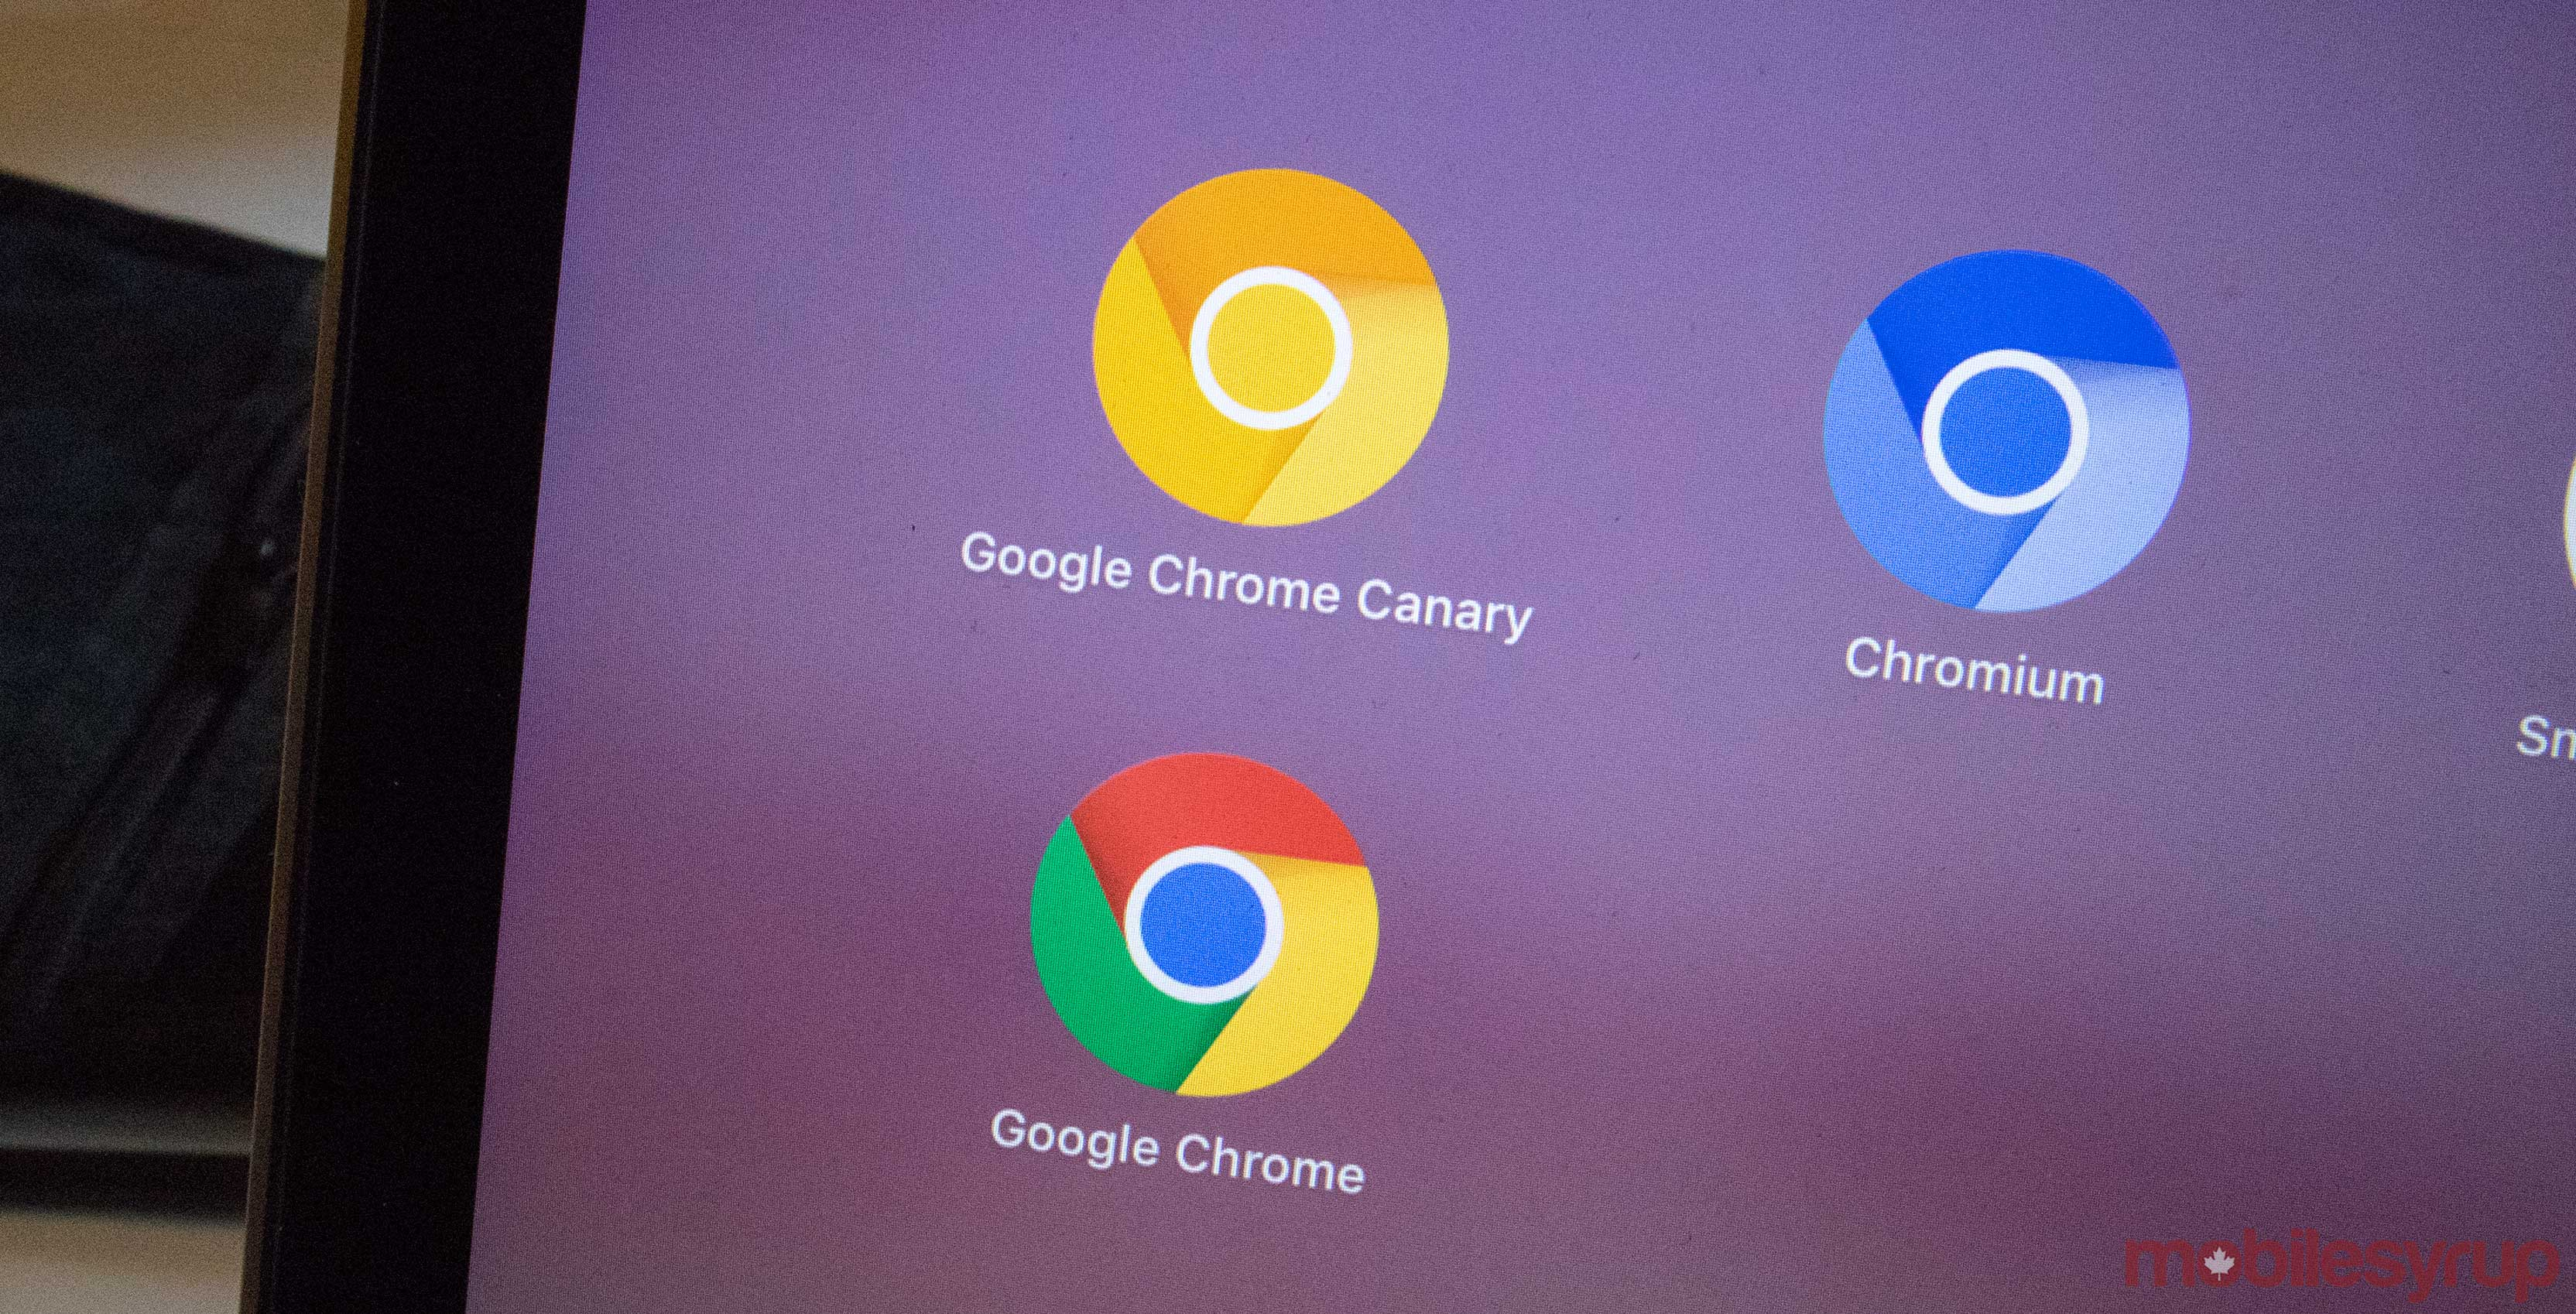 Google Chrome for Android's web browser will support quick replies